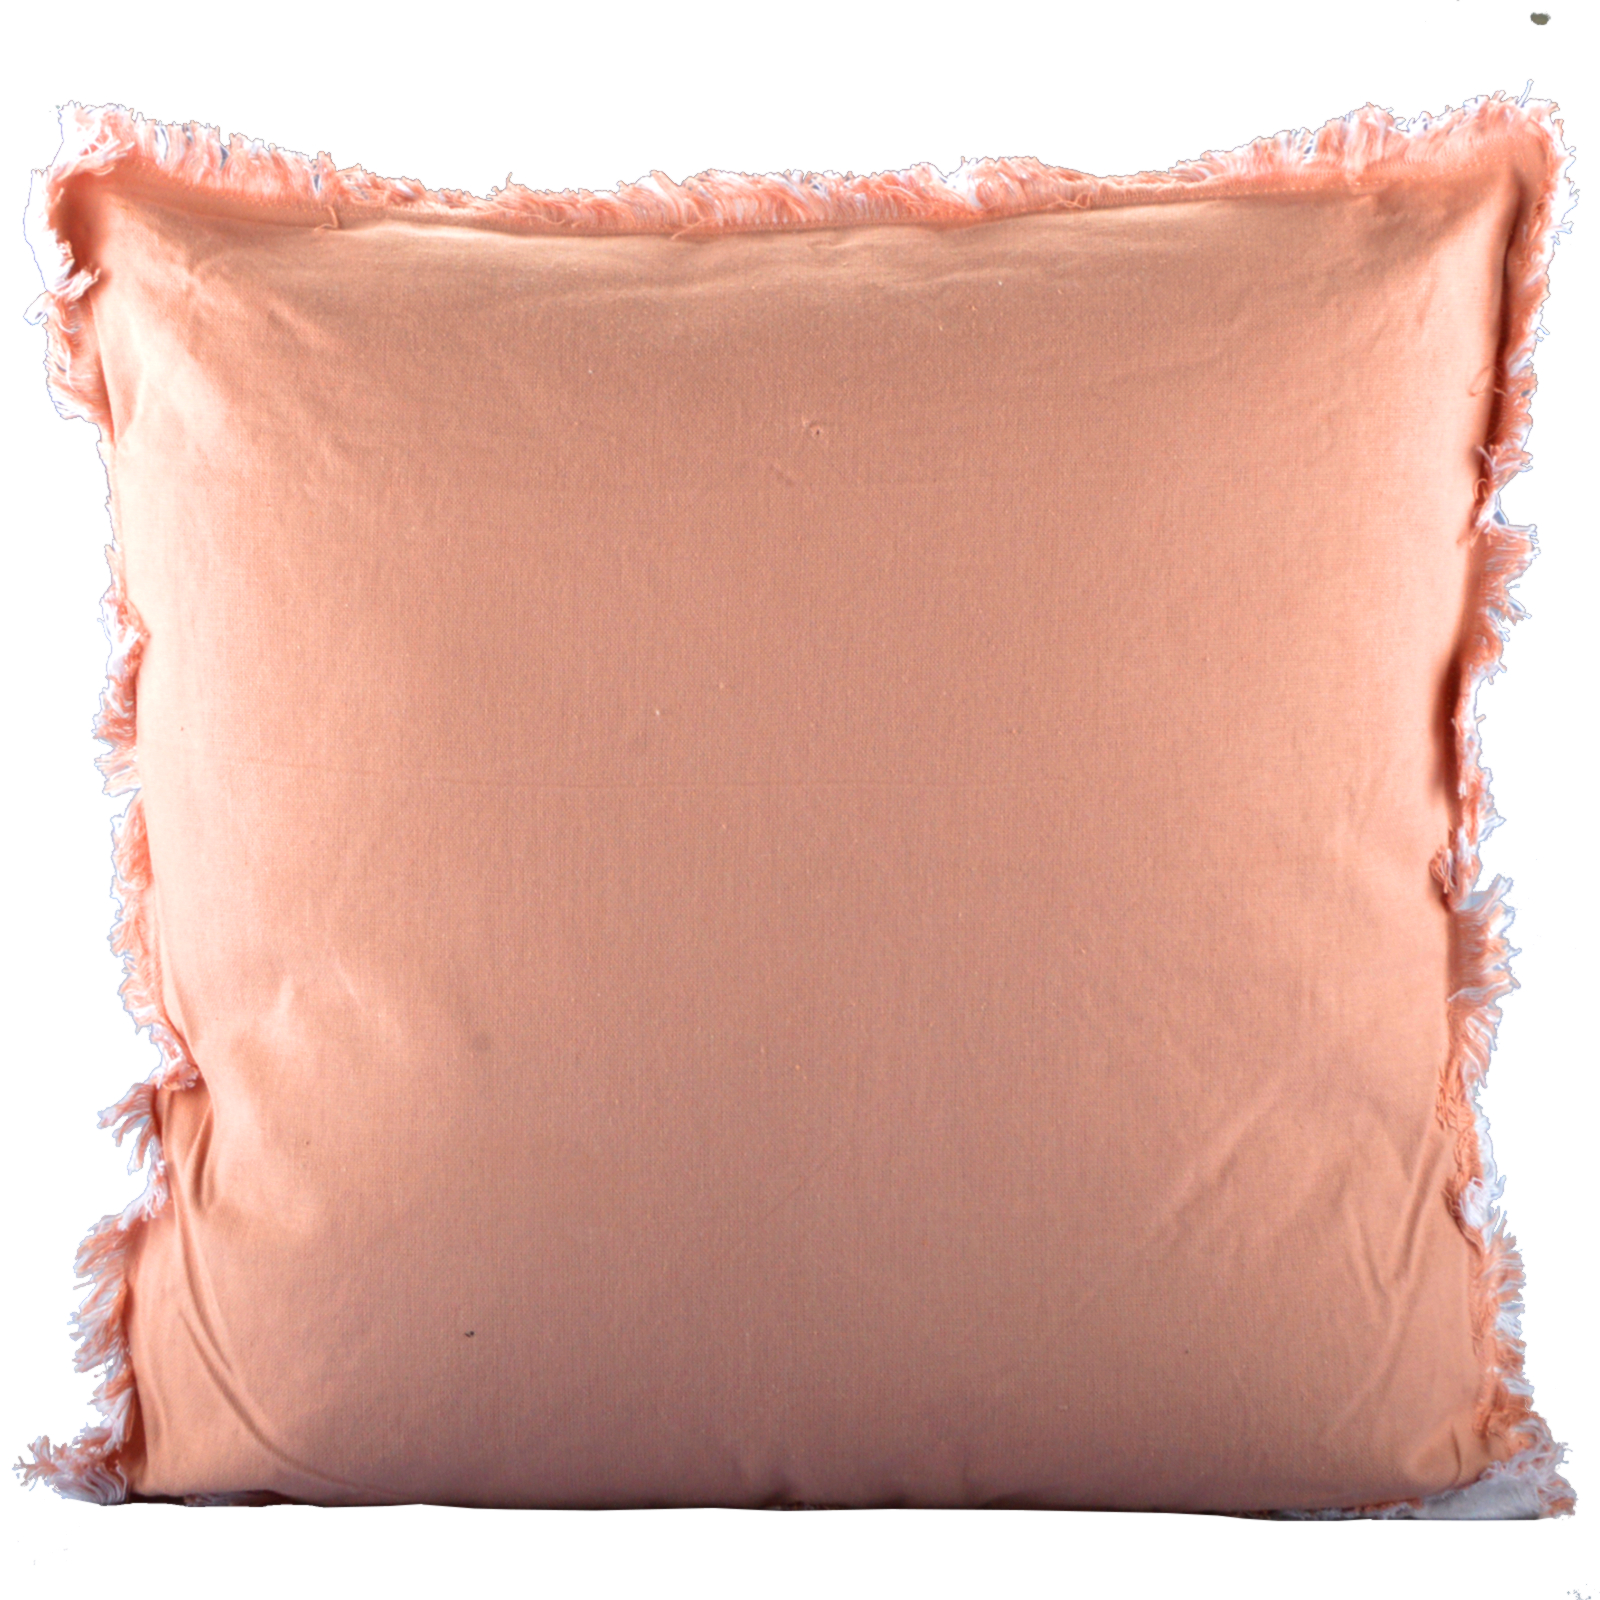 Throw Pillows With Washable Covers : 3 Colors Cushion Fringe Pillow Incl. Filling Cushion Washable Reference eBay